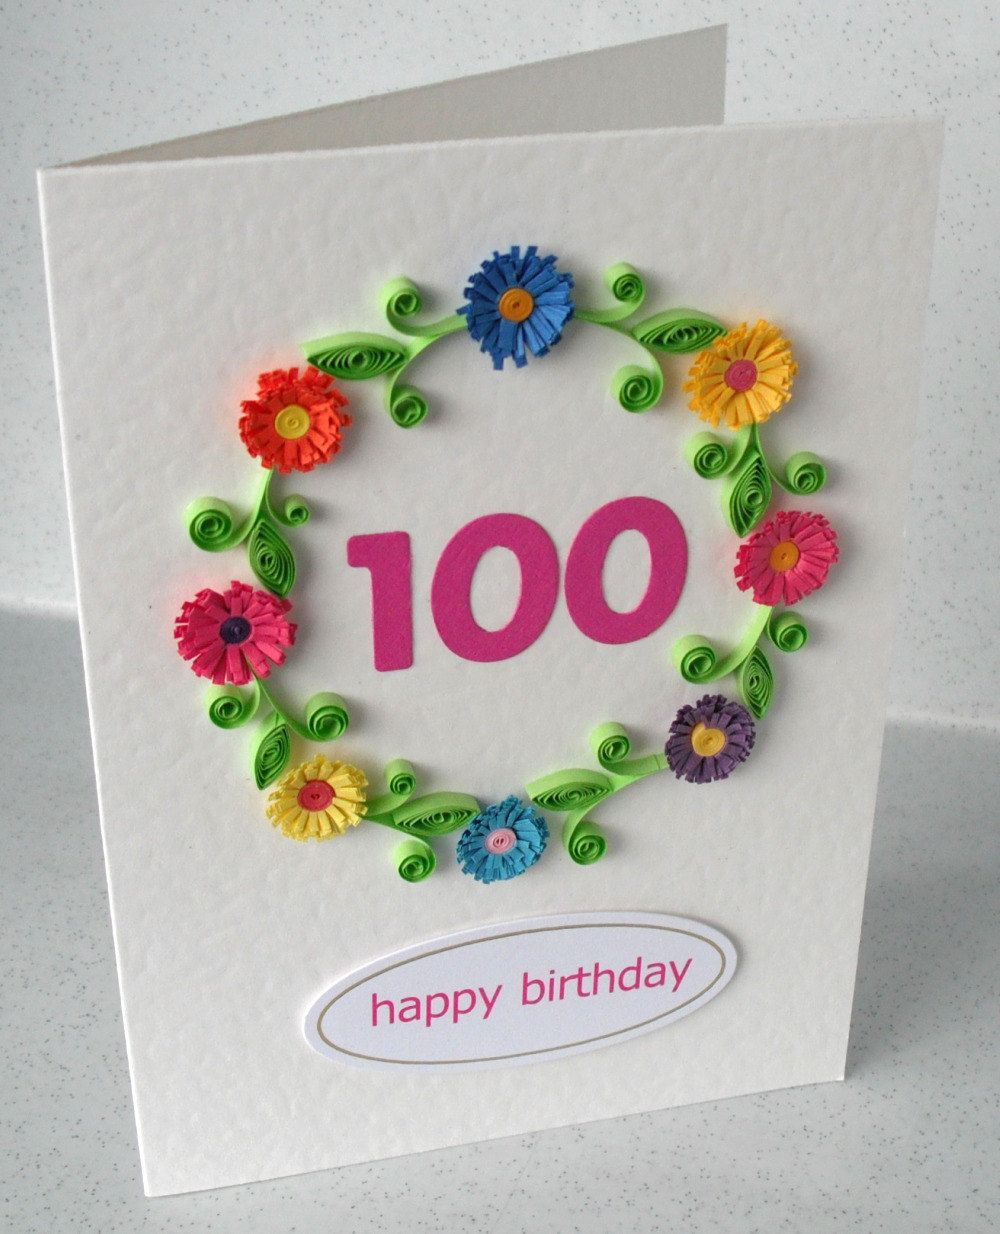 Simple And Beautiful Birthday Cards Images 100th Birthday Card Birthday Cards For Women